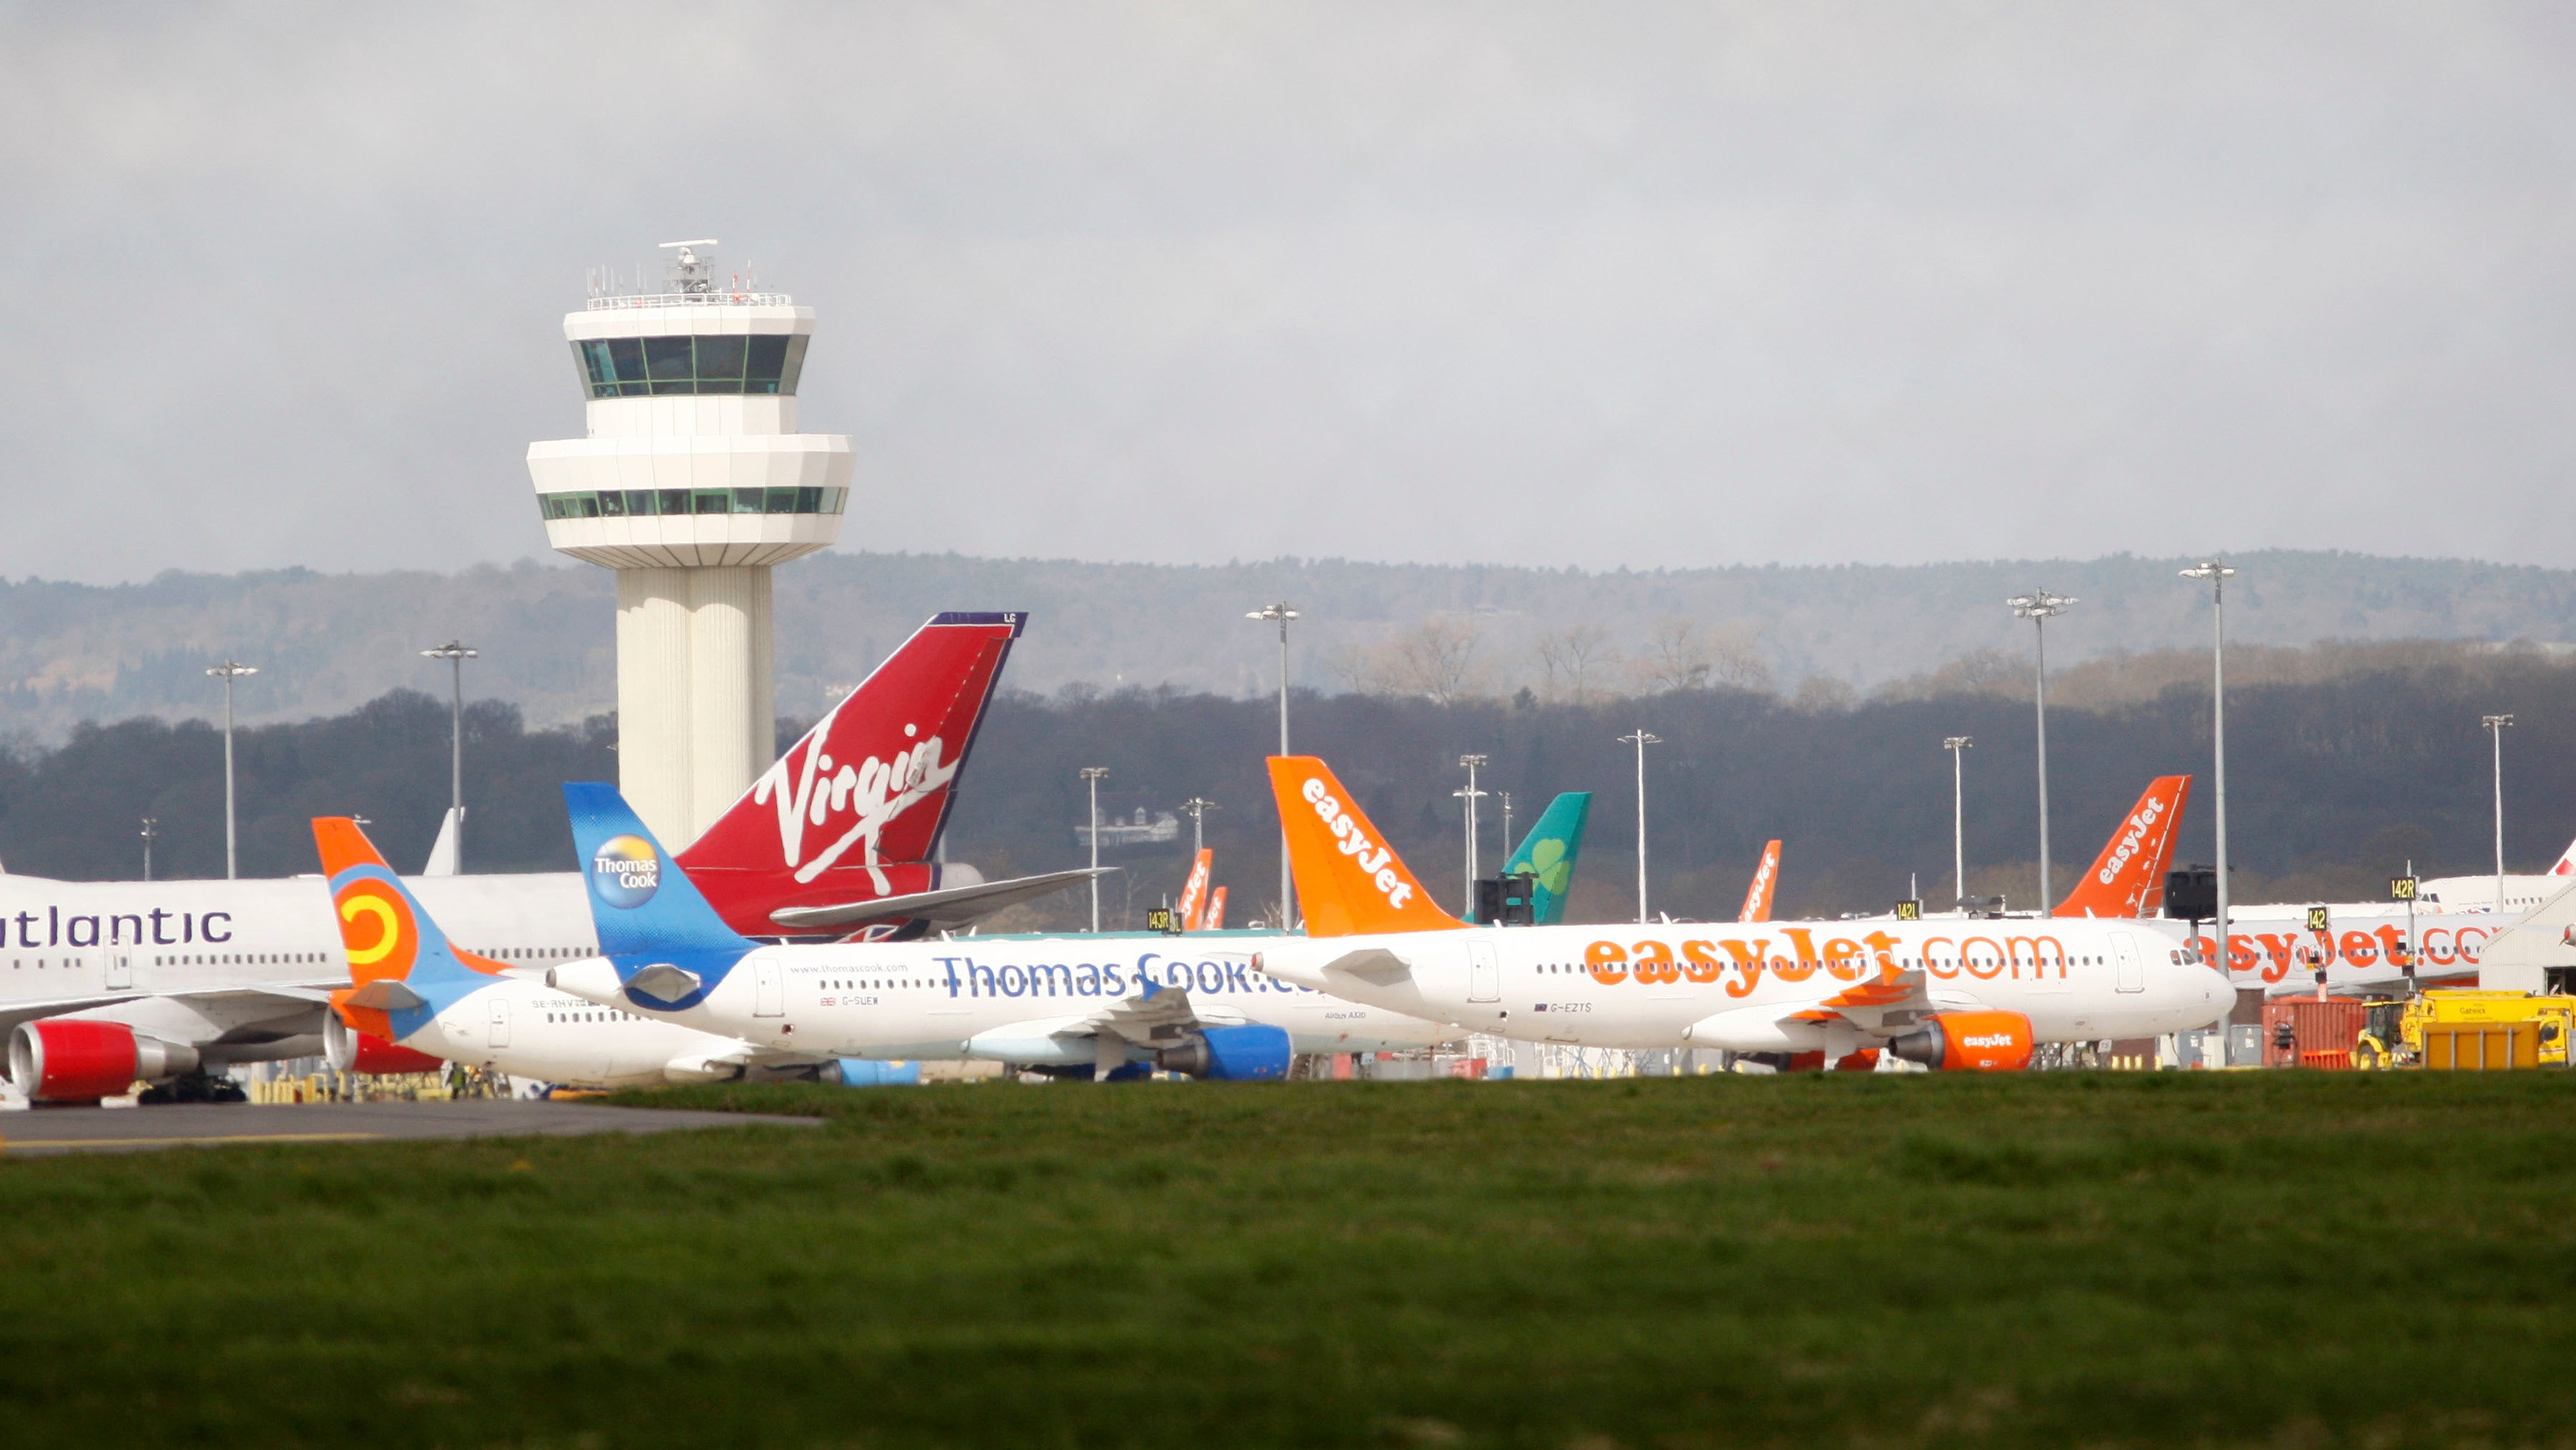 Two Arrested In Drone Incident That Disrupted Hundreds Of Flights At Gatwick Airport